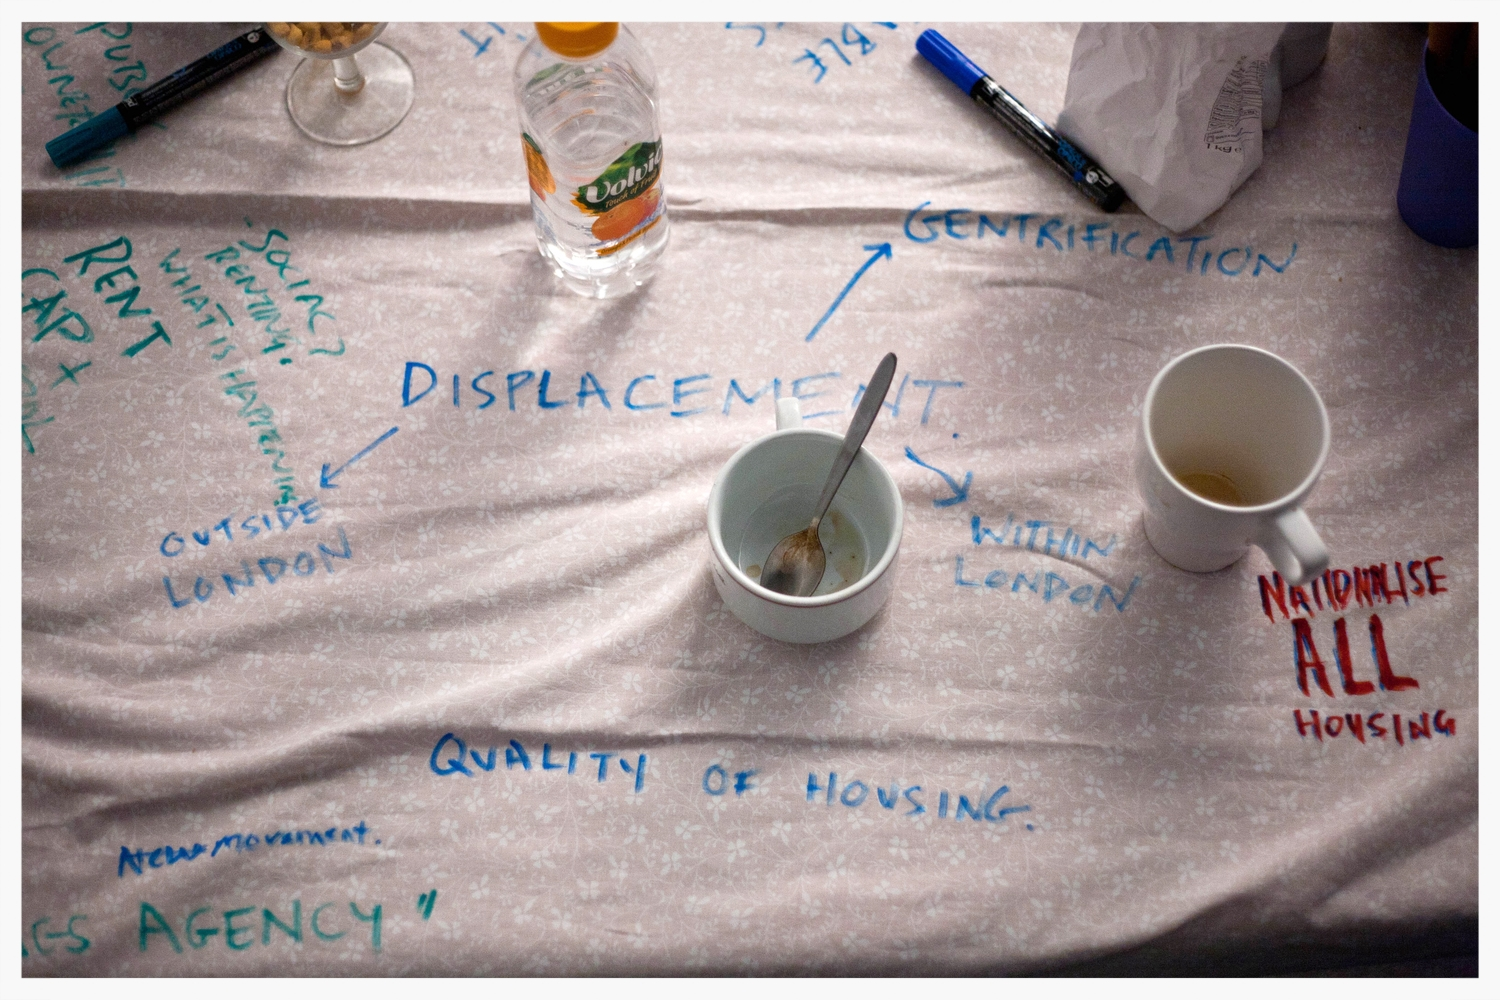 Round table discussion   'Real Estates'  a project by Fugitive Images, Focus E15,http://focuse15.org/ PEER Gallery, 19th March 2015